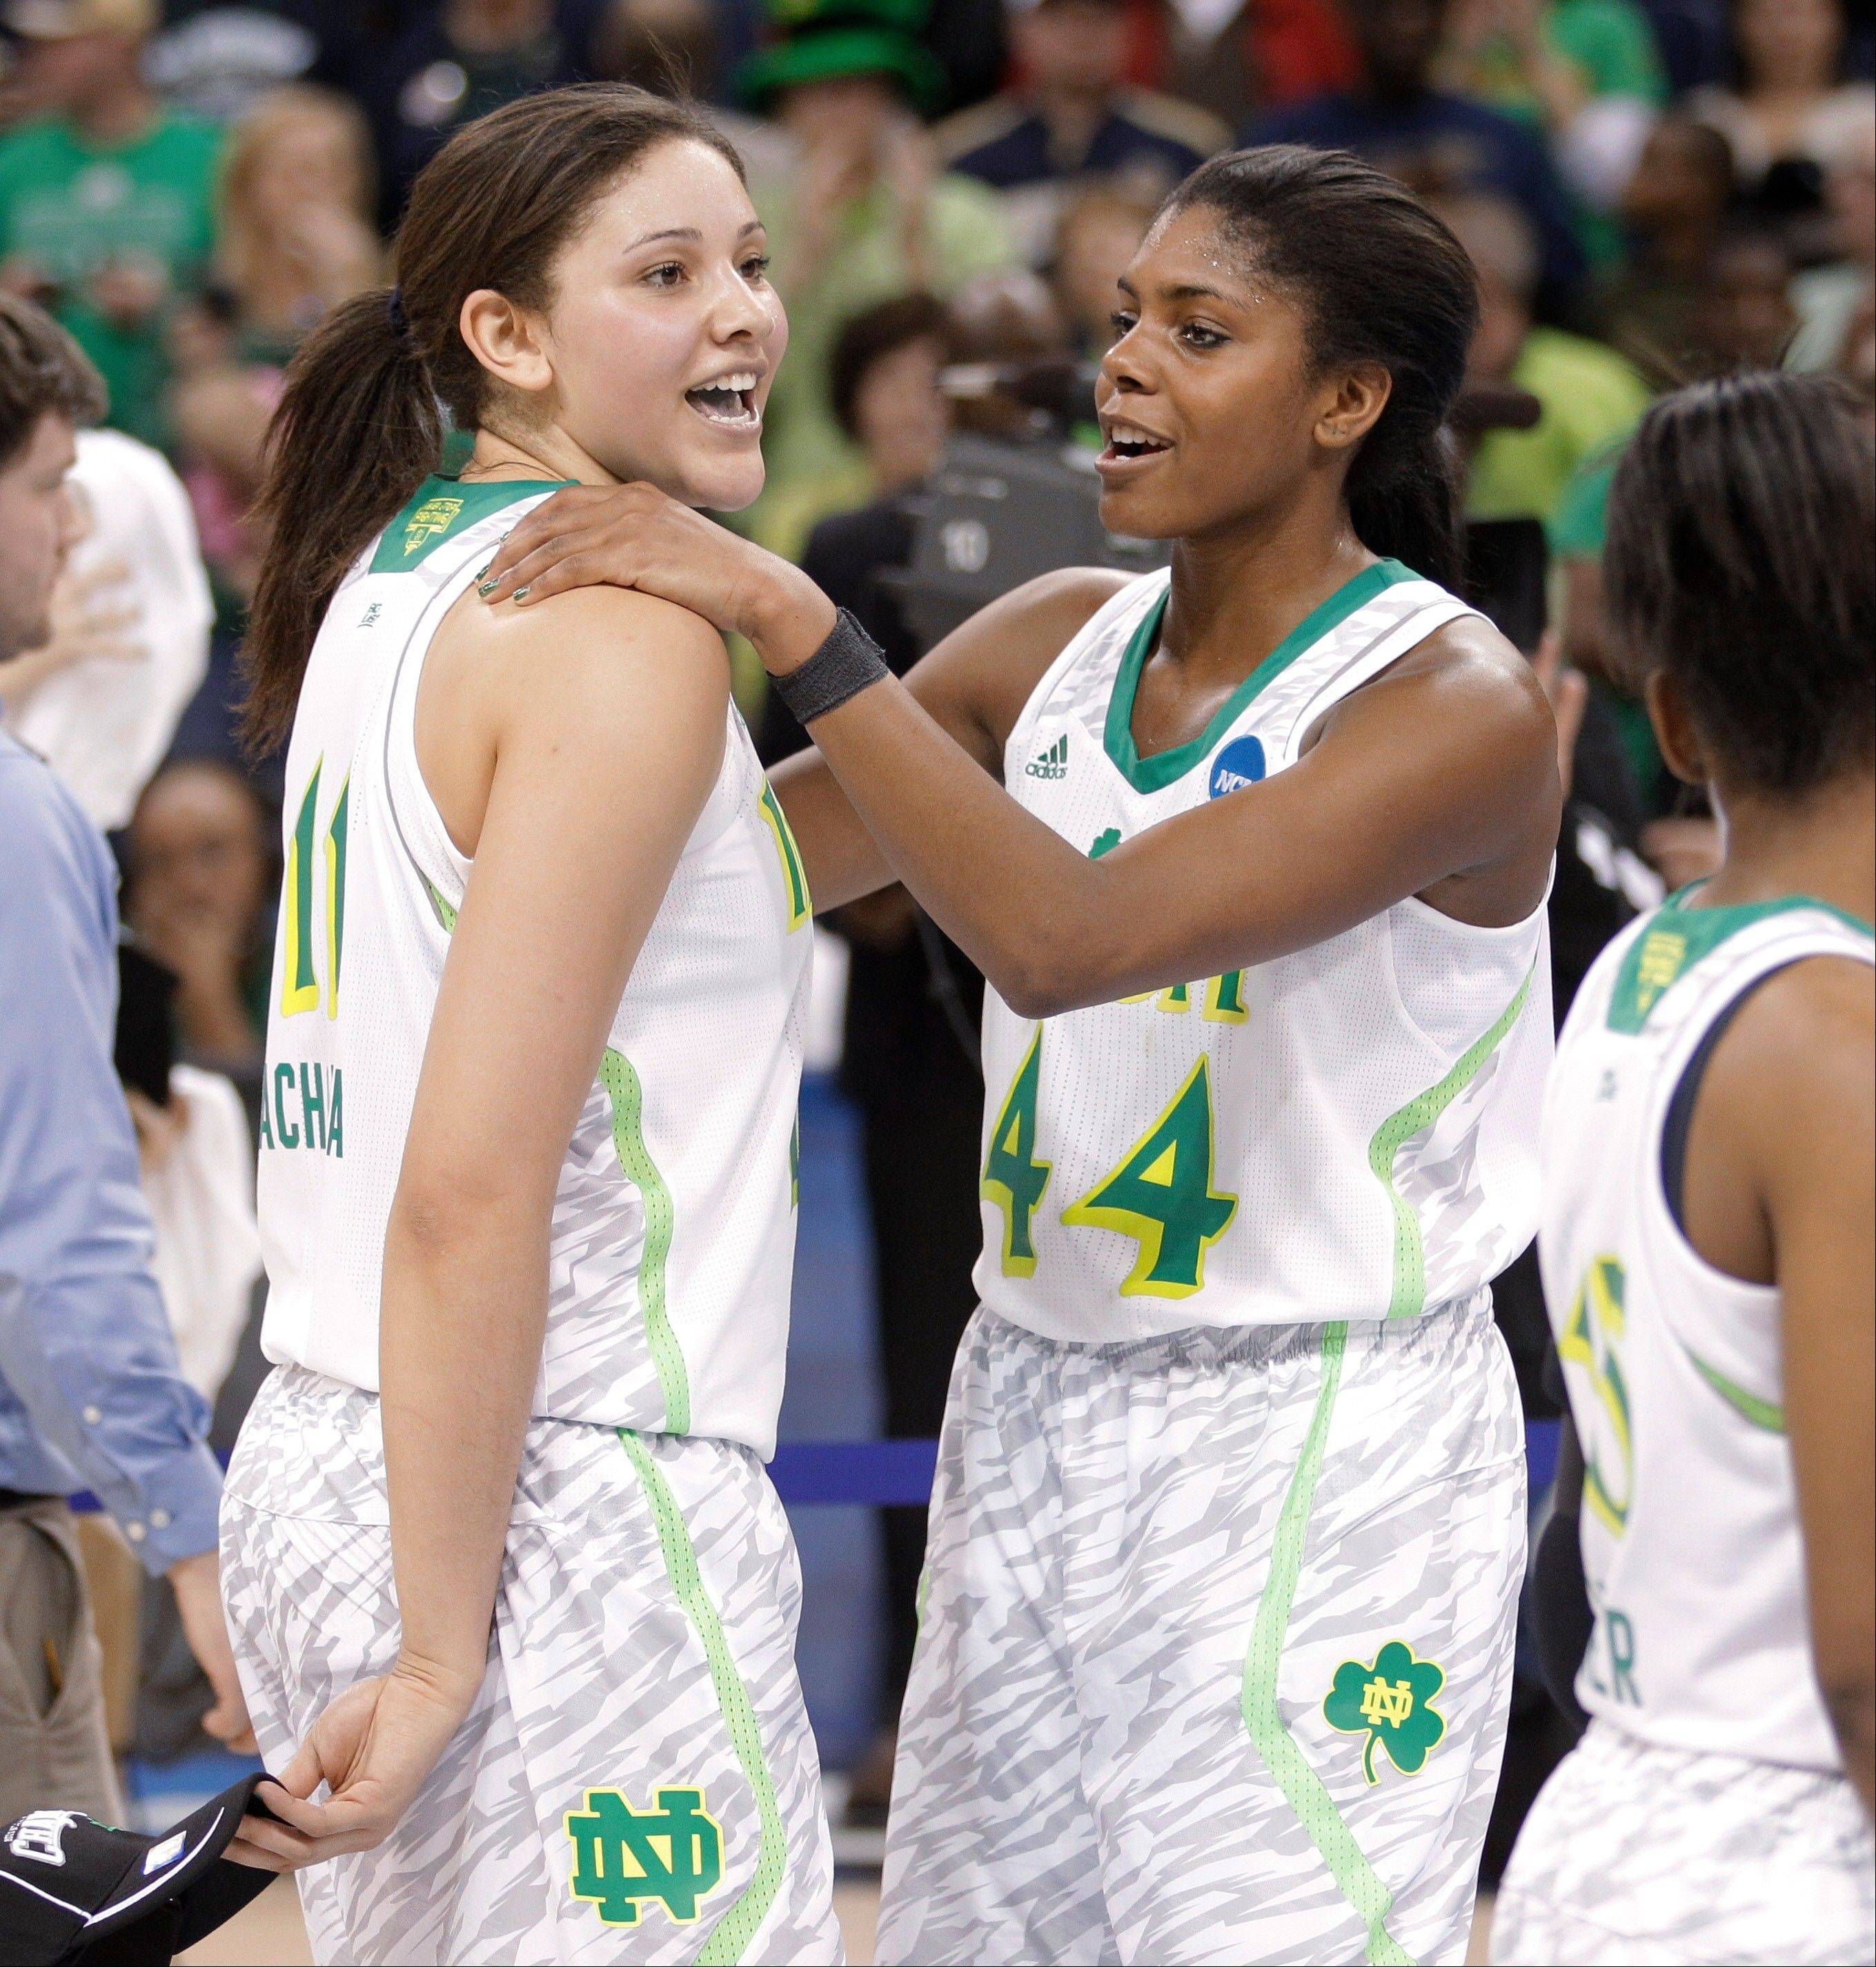 Notre Dame forwards Natalie Achonwa (11) and Ariel Braker (44) celebrate Notre Dame's win over Duke at the regional final of the NCAA women's college basketball tournament Tuesday, April 2, 2013, in Norfolk, Va. Notre Dame won 87-76.